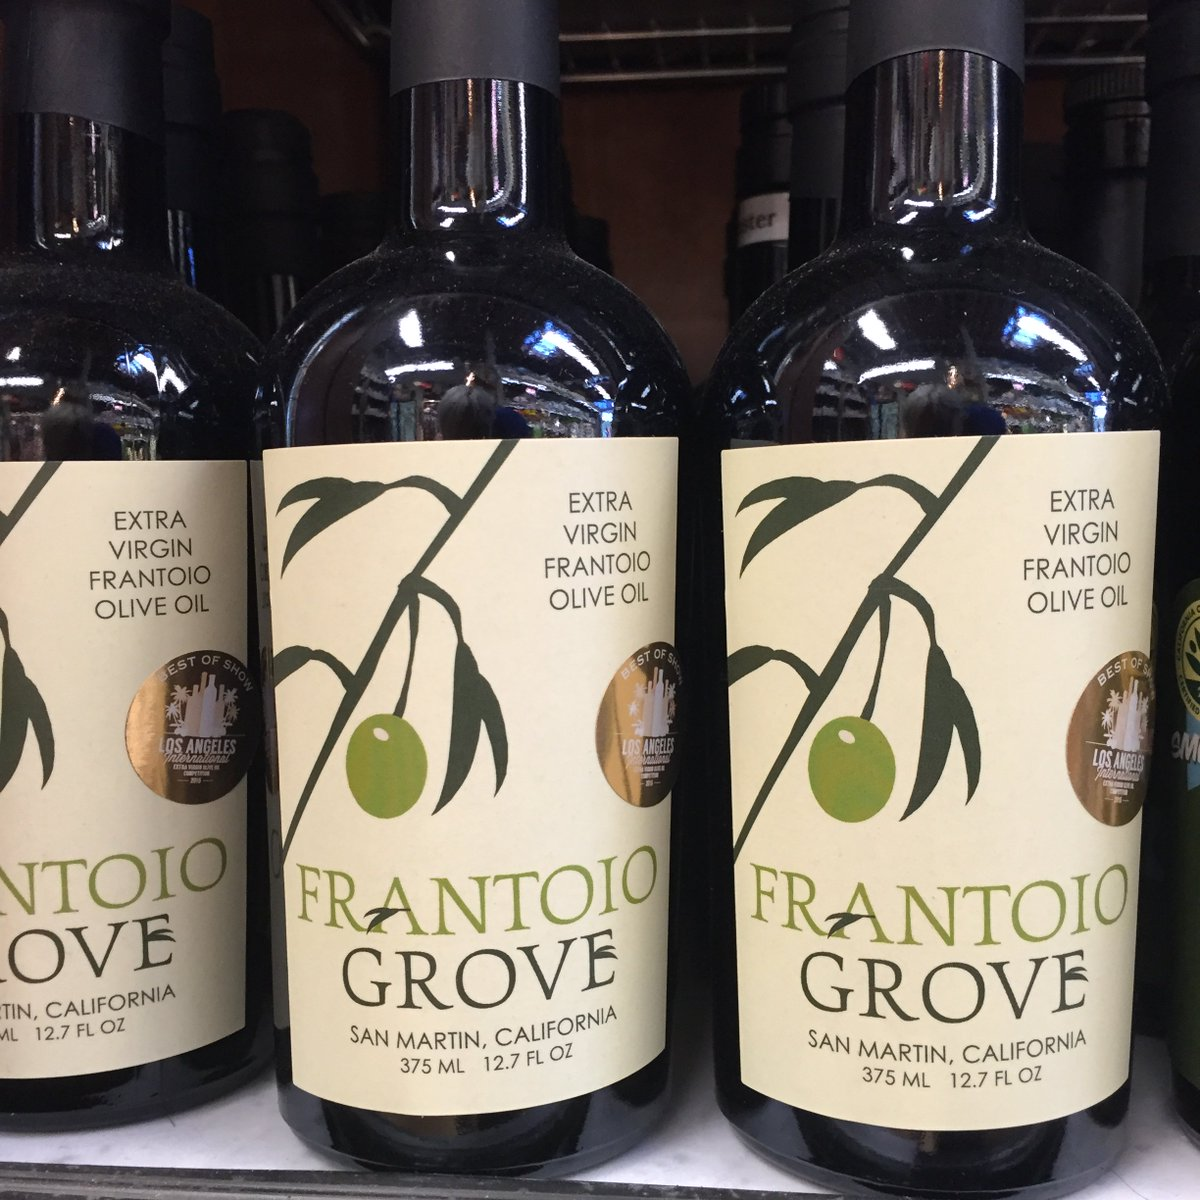 Image result for frantoio grove olive oil